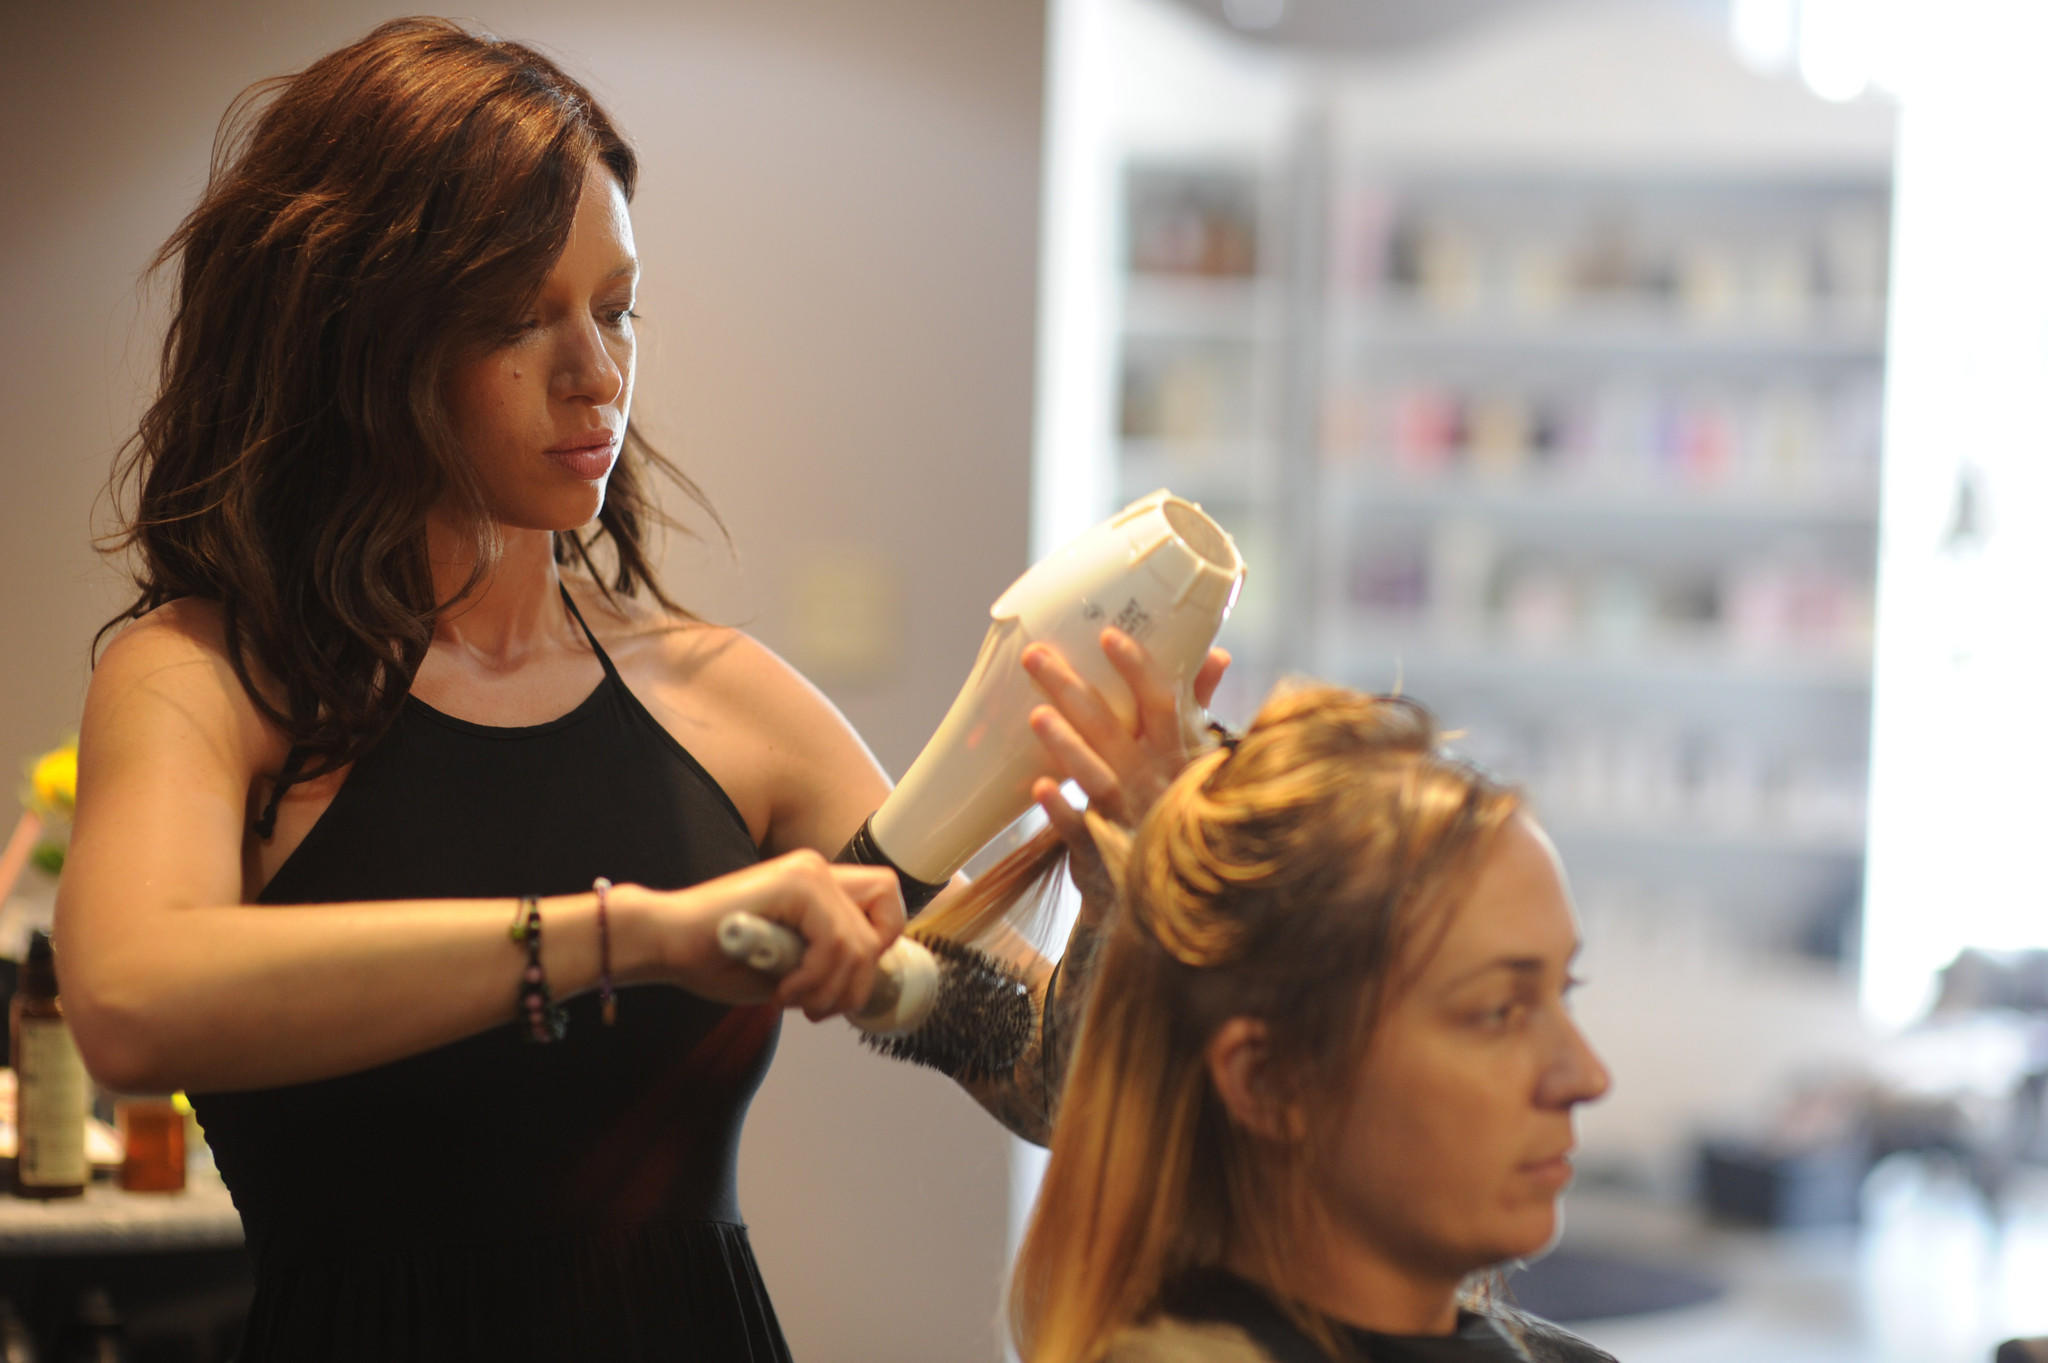 Kathleen Lauer, owner of Inspire Salon, styles the hair of Carla Jacobsen of Burtonsville. Inspire uses organic, fair trade, cruelty-free and environmentally focused hair products.